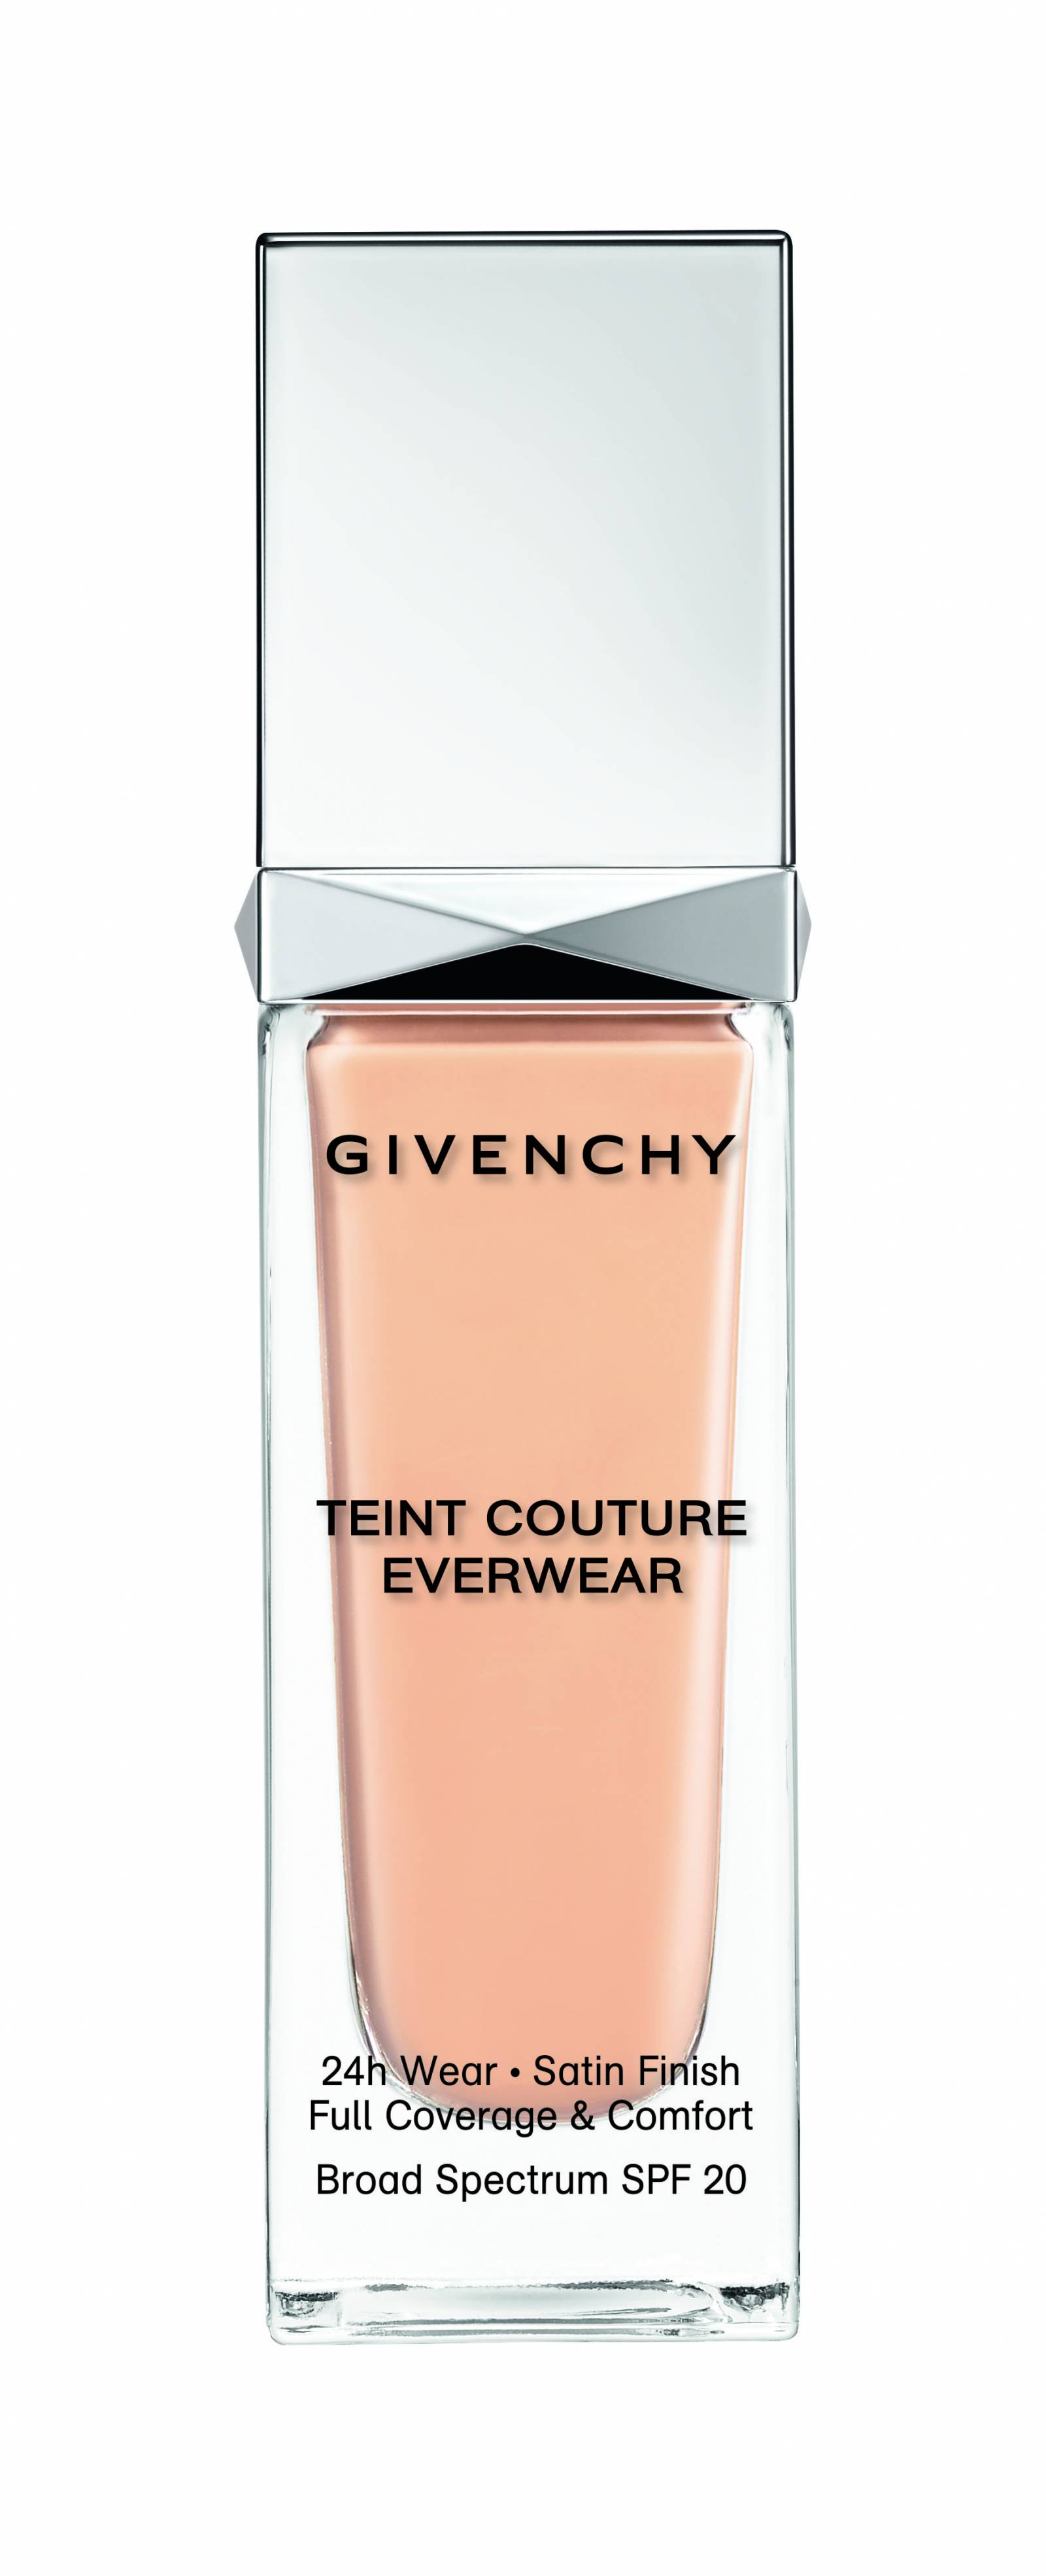 Teint Couture Everwear, Givenchy